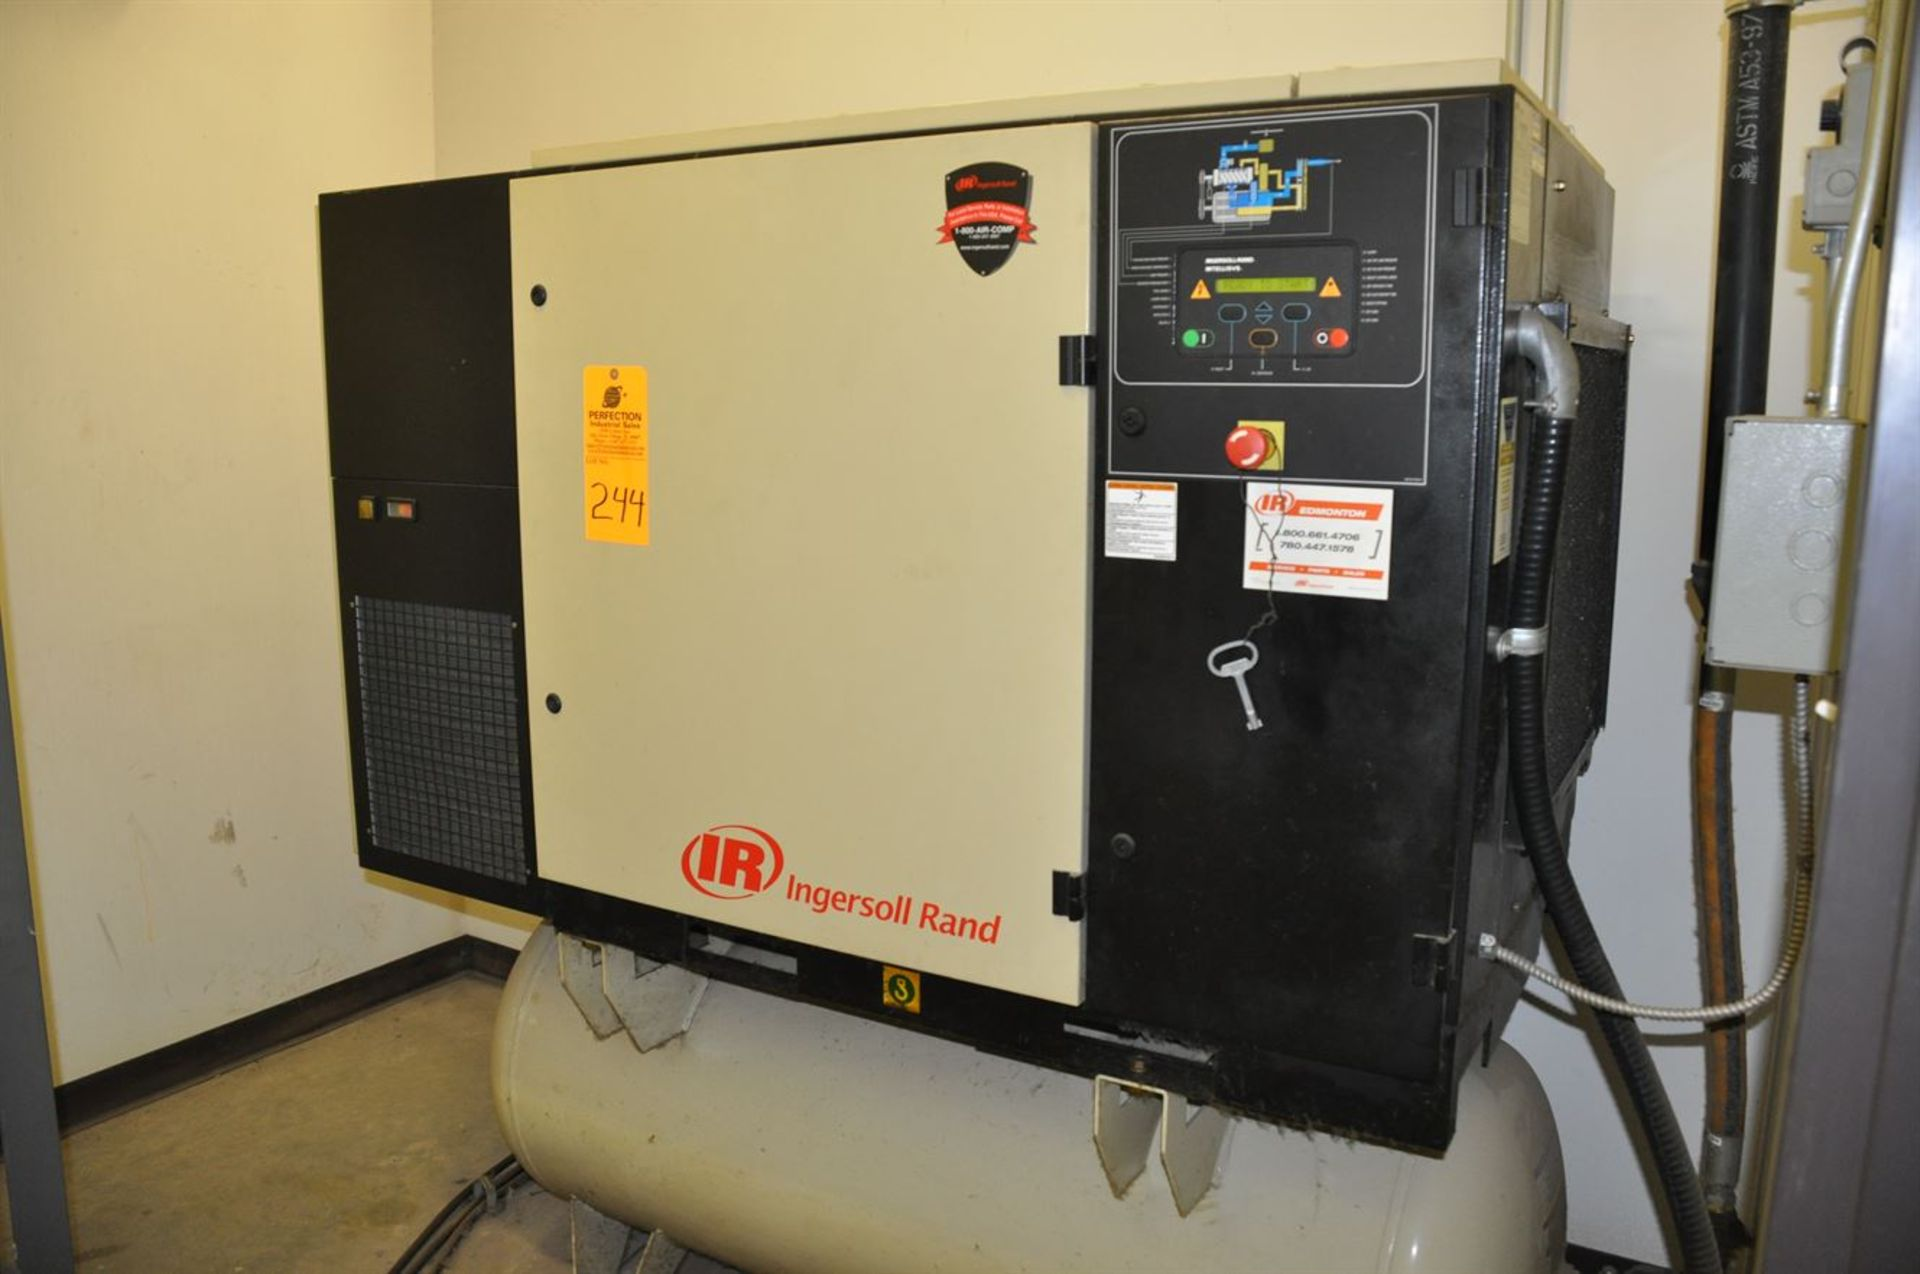 2012 INGERSOLL RAND UP6-30-150 30 hp Air Compressor System, s/n CBV185765, w/ Built-In Air Dryer,